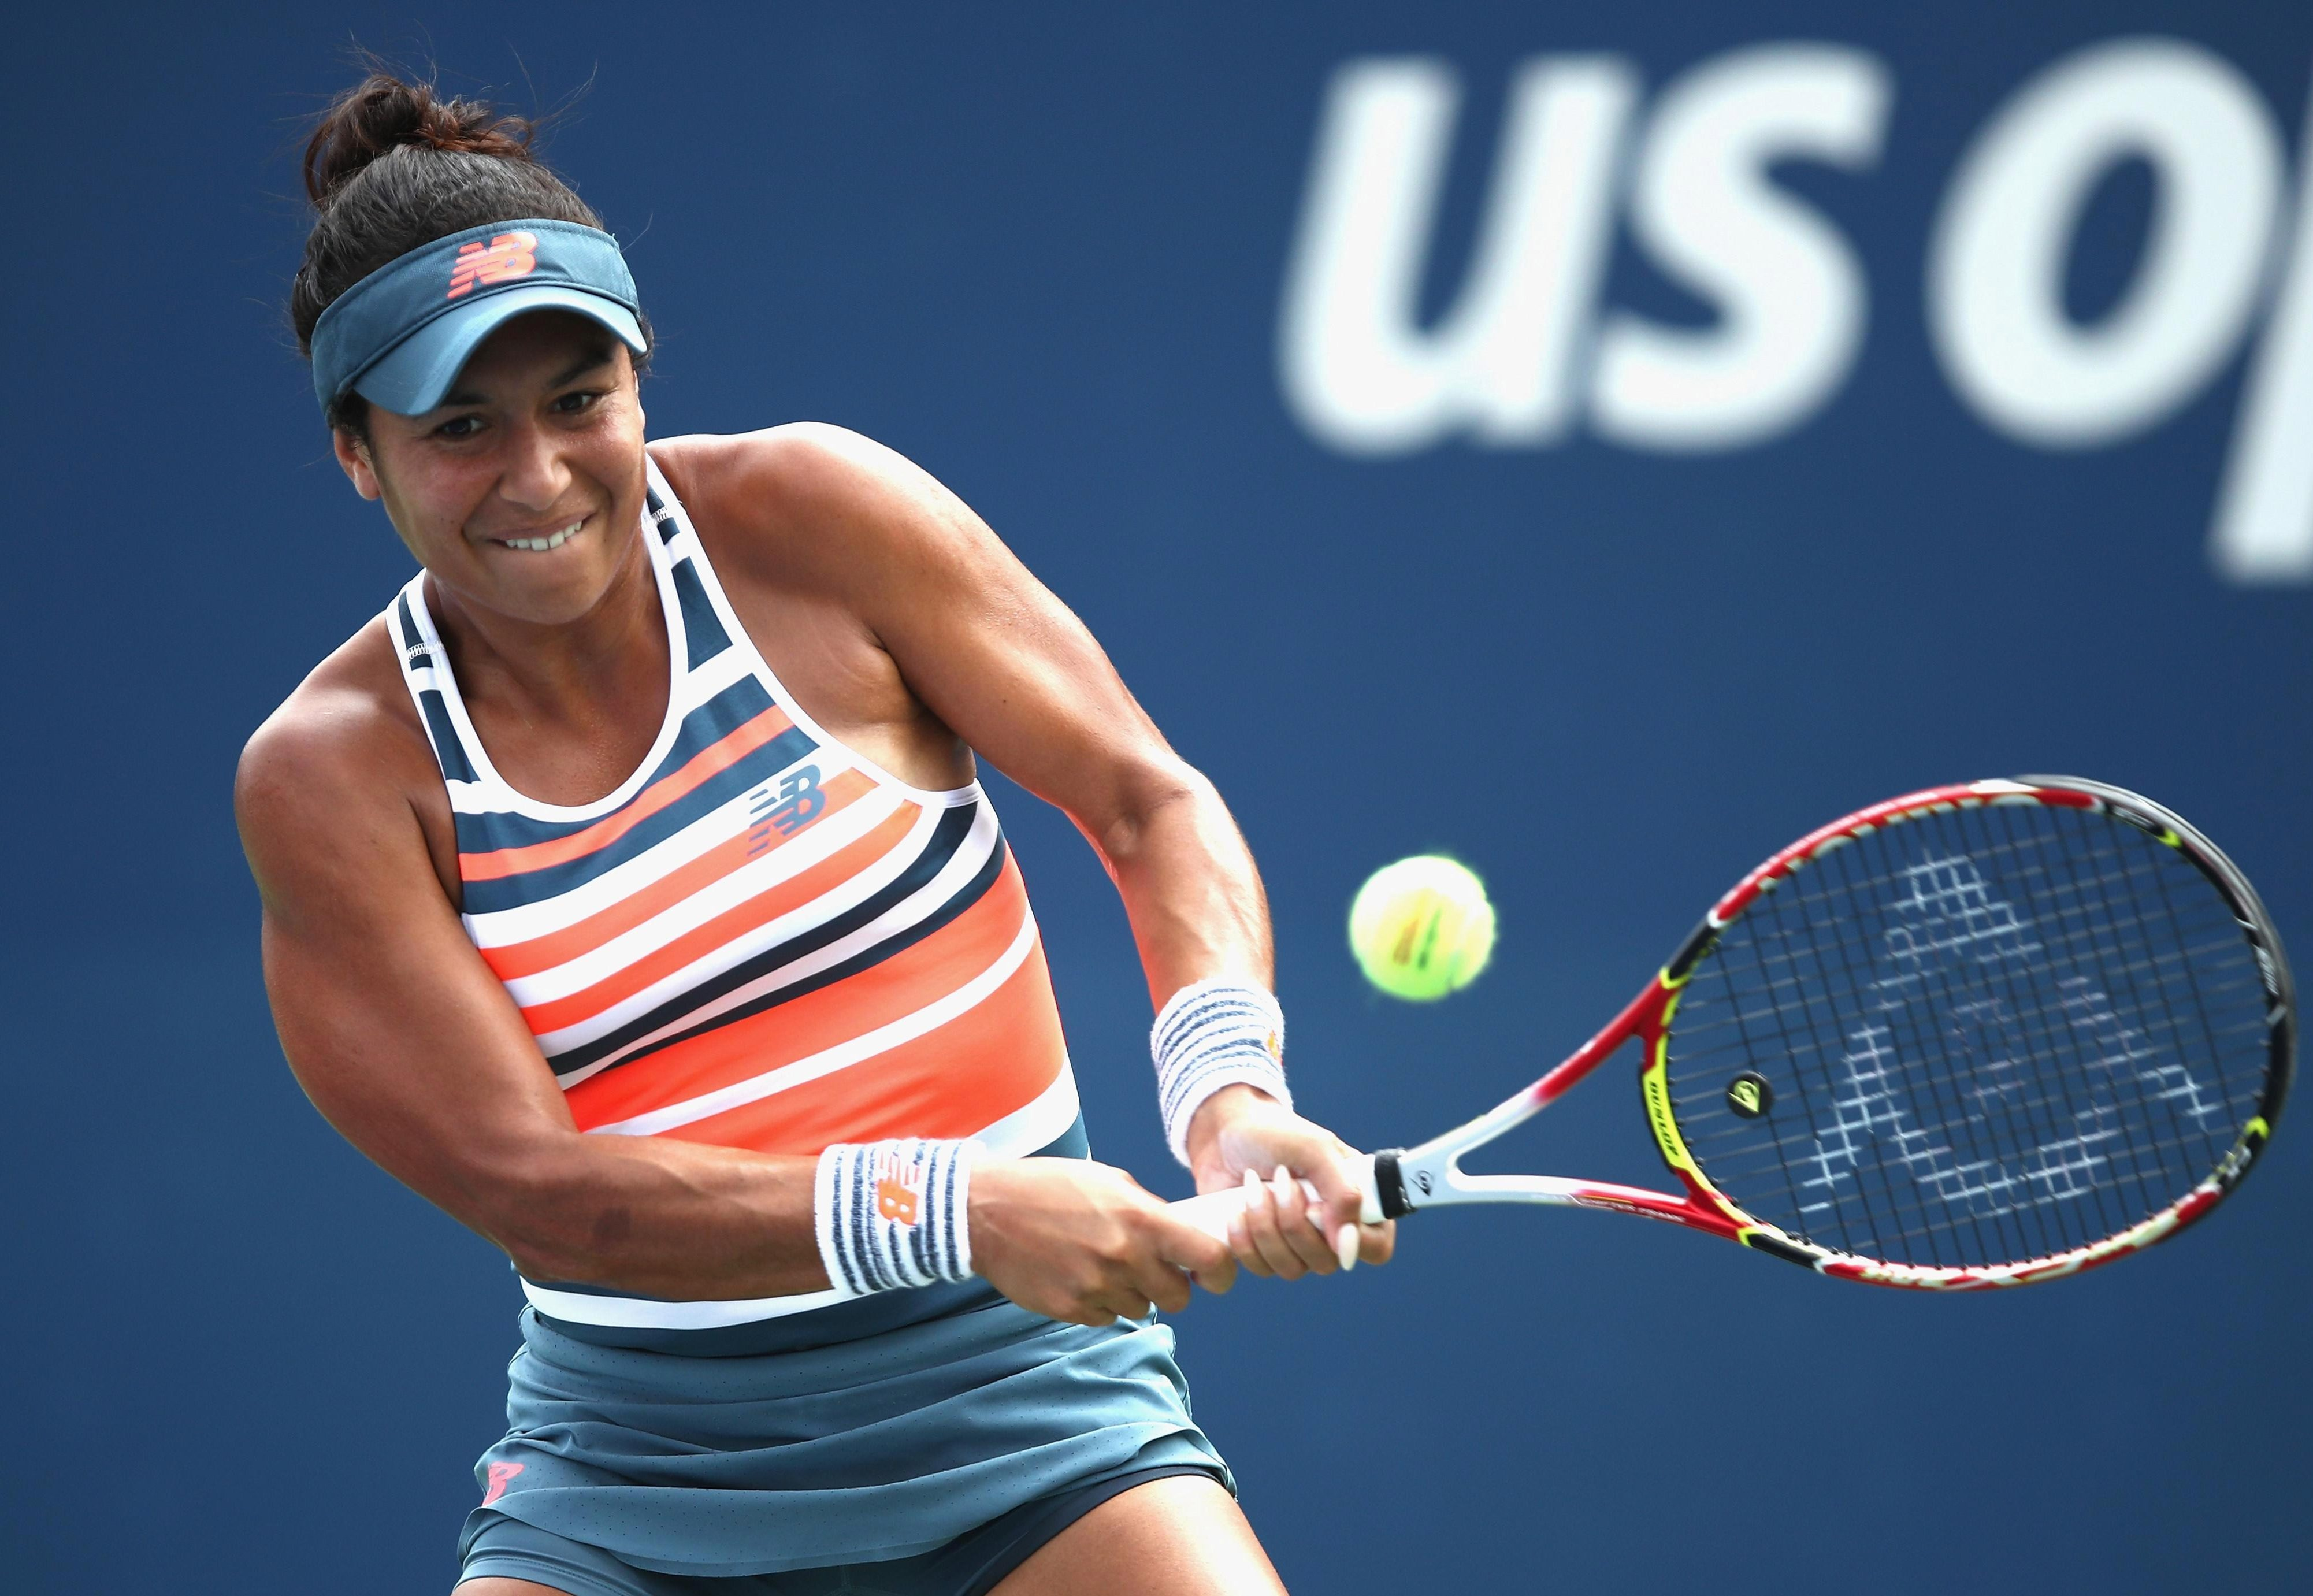 Heather Watson is not being shown on Amazon's coverage of the US Open